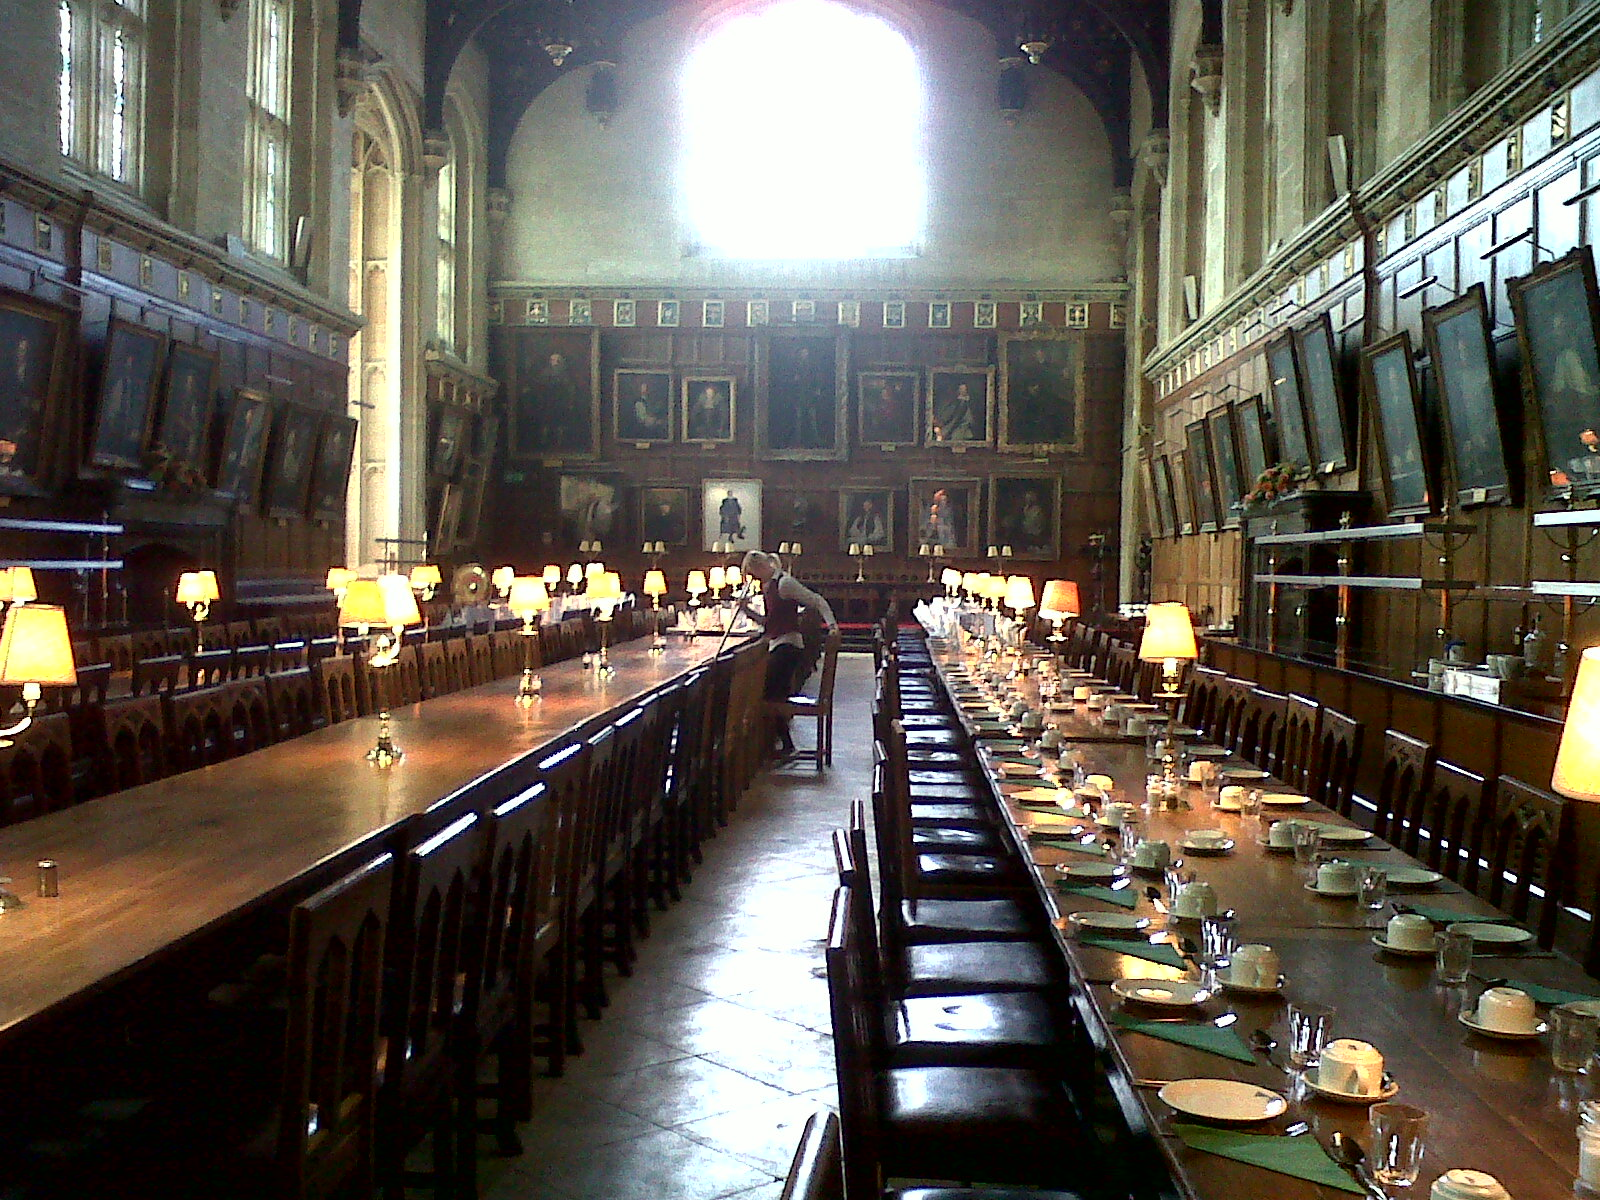 Most Inspiring Wallpaper Harry Potter Dining Hall - IMG00017-20100925-1428  Best Photo Reference_19249.jpg